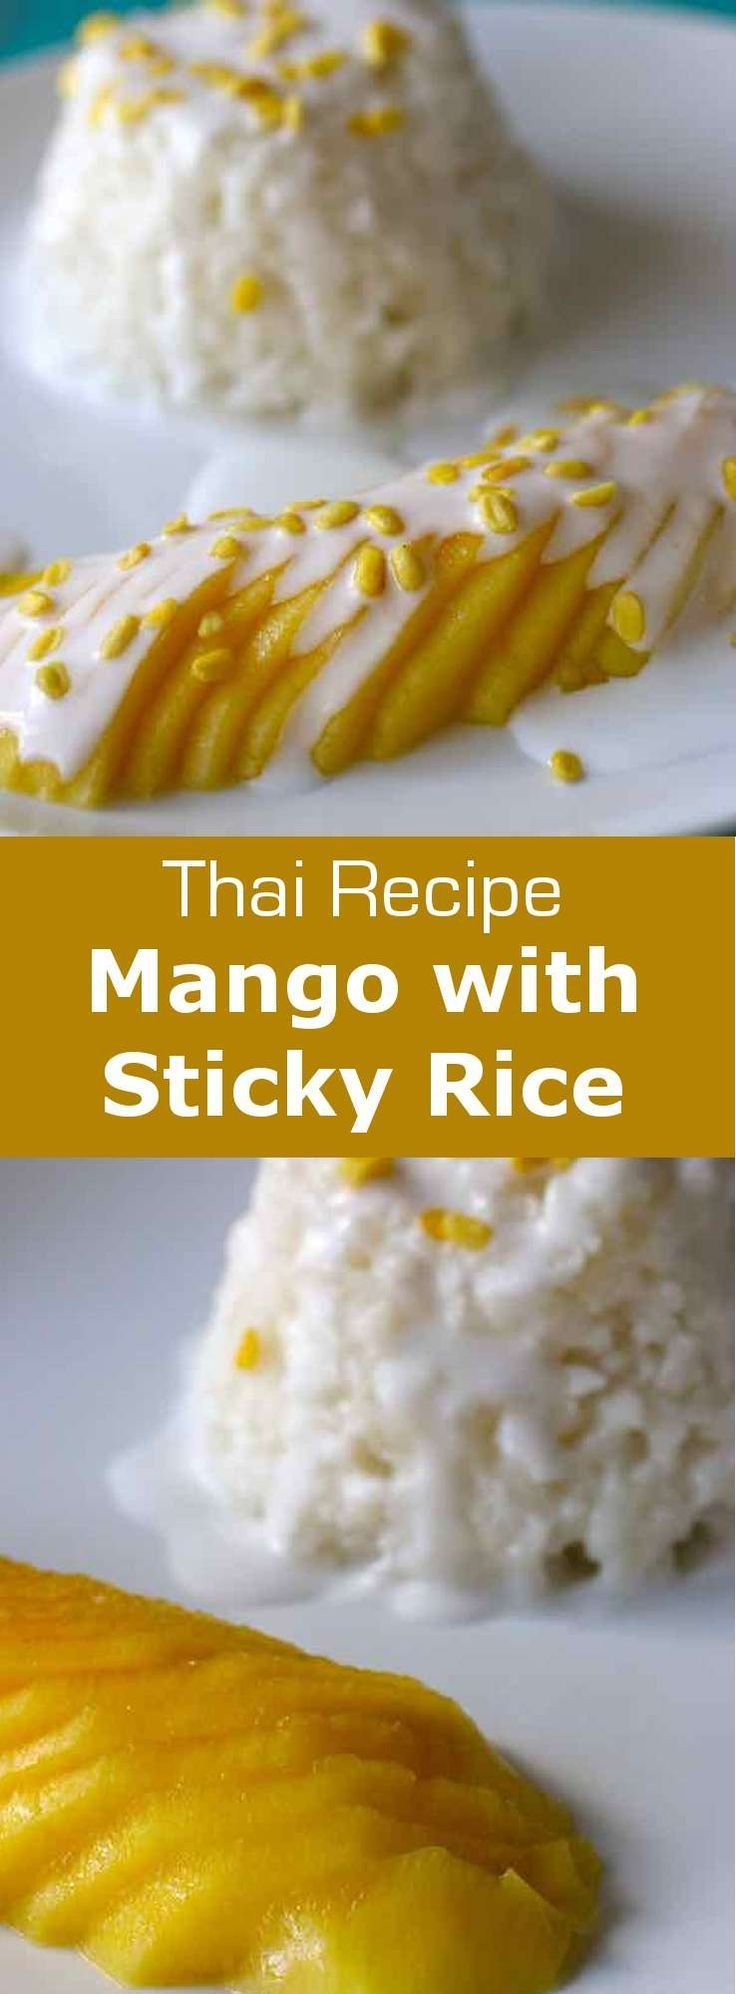 Thailand: Mango with Sticky Rice (Khao Neow Mamuang)